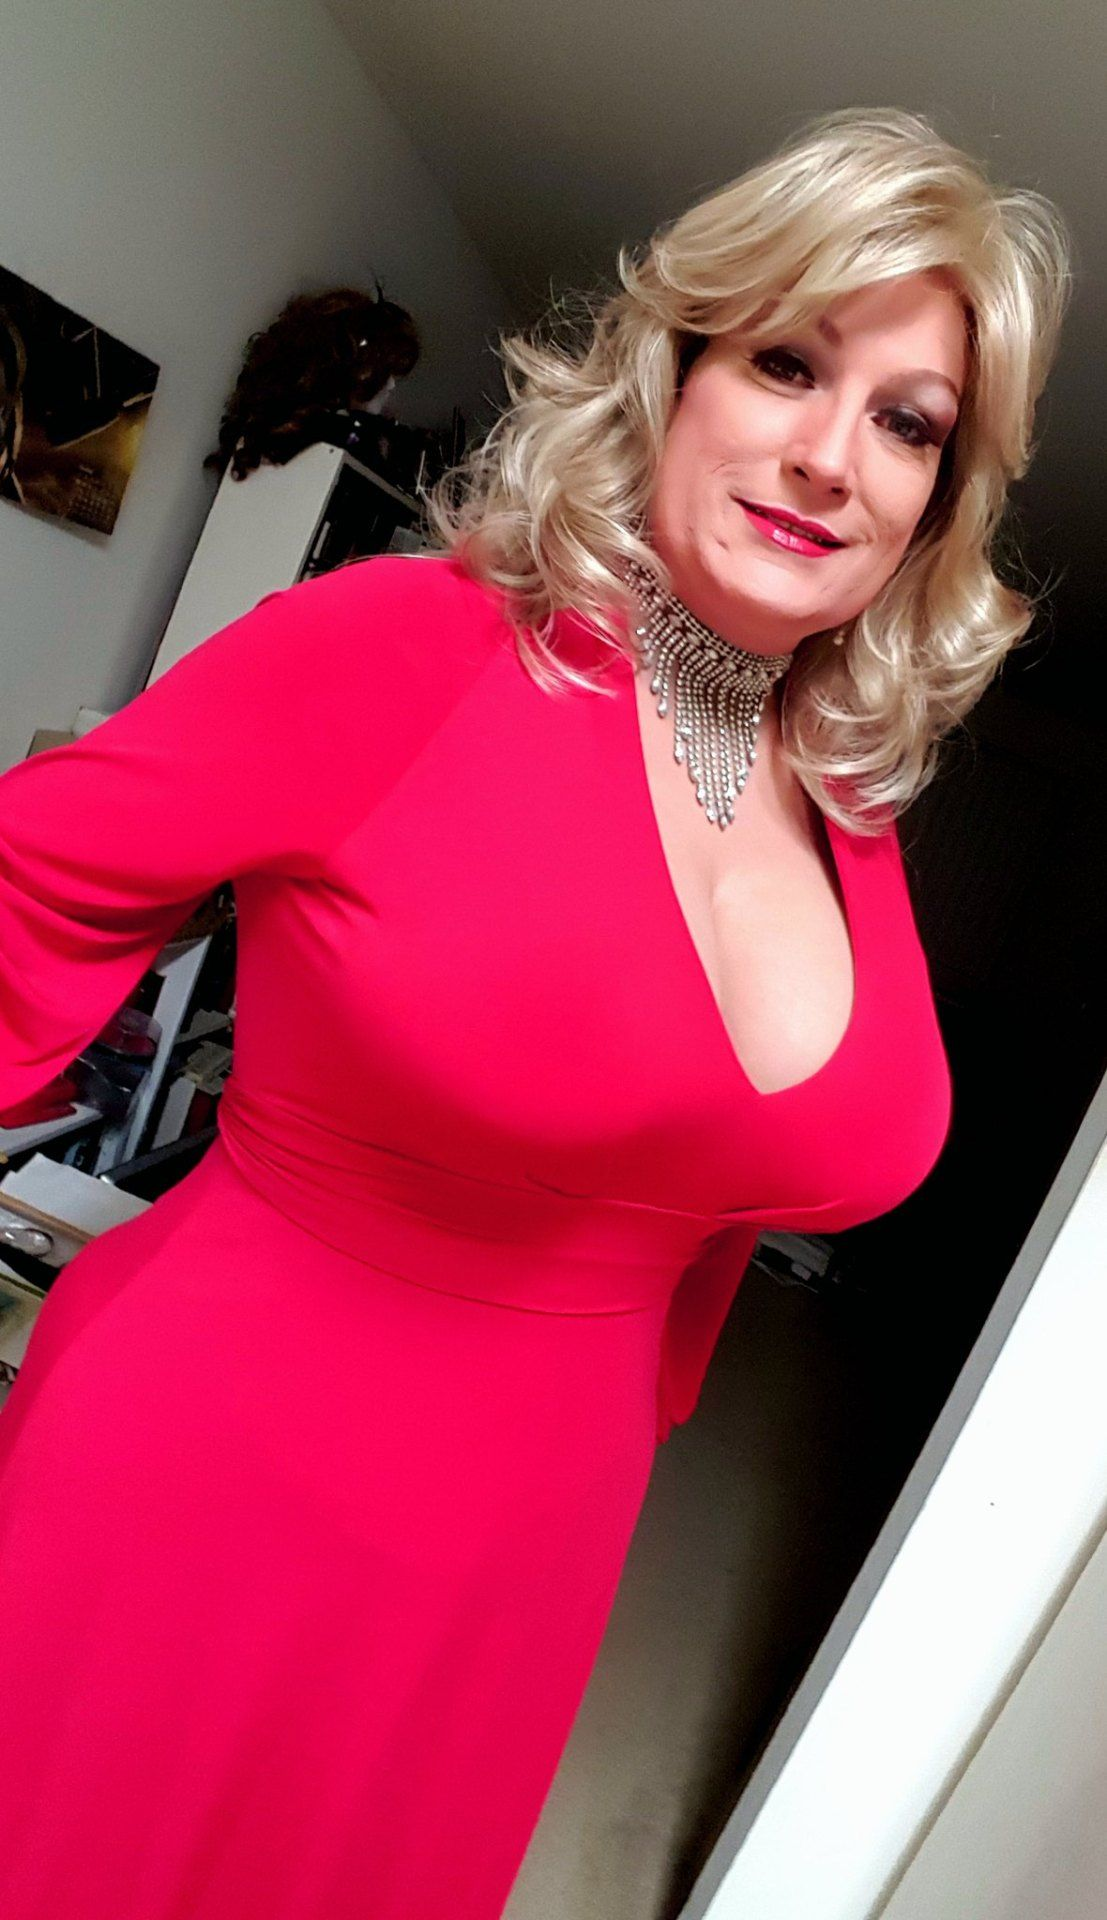 gwindsor, 55, from Sandhurst is a local granny looking for